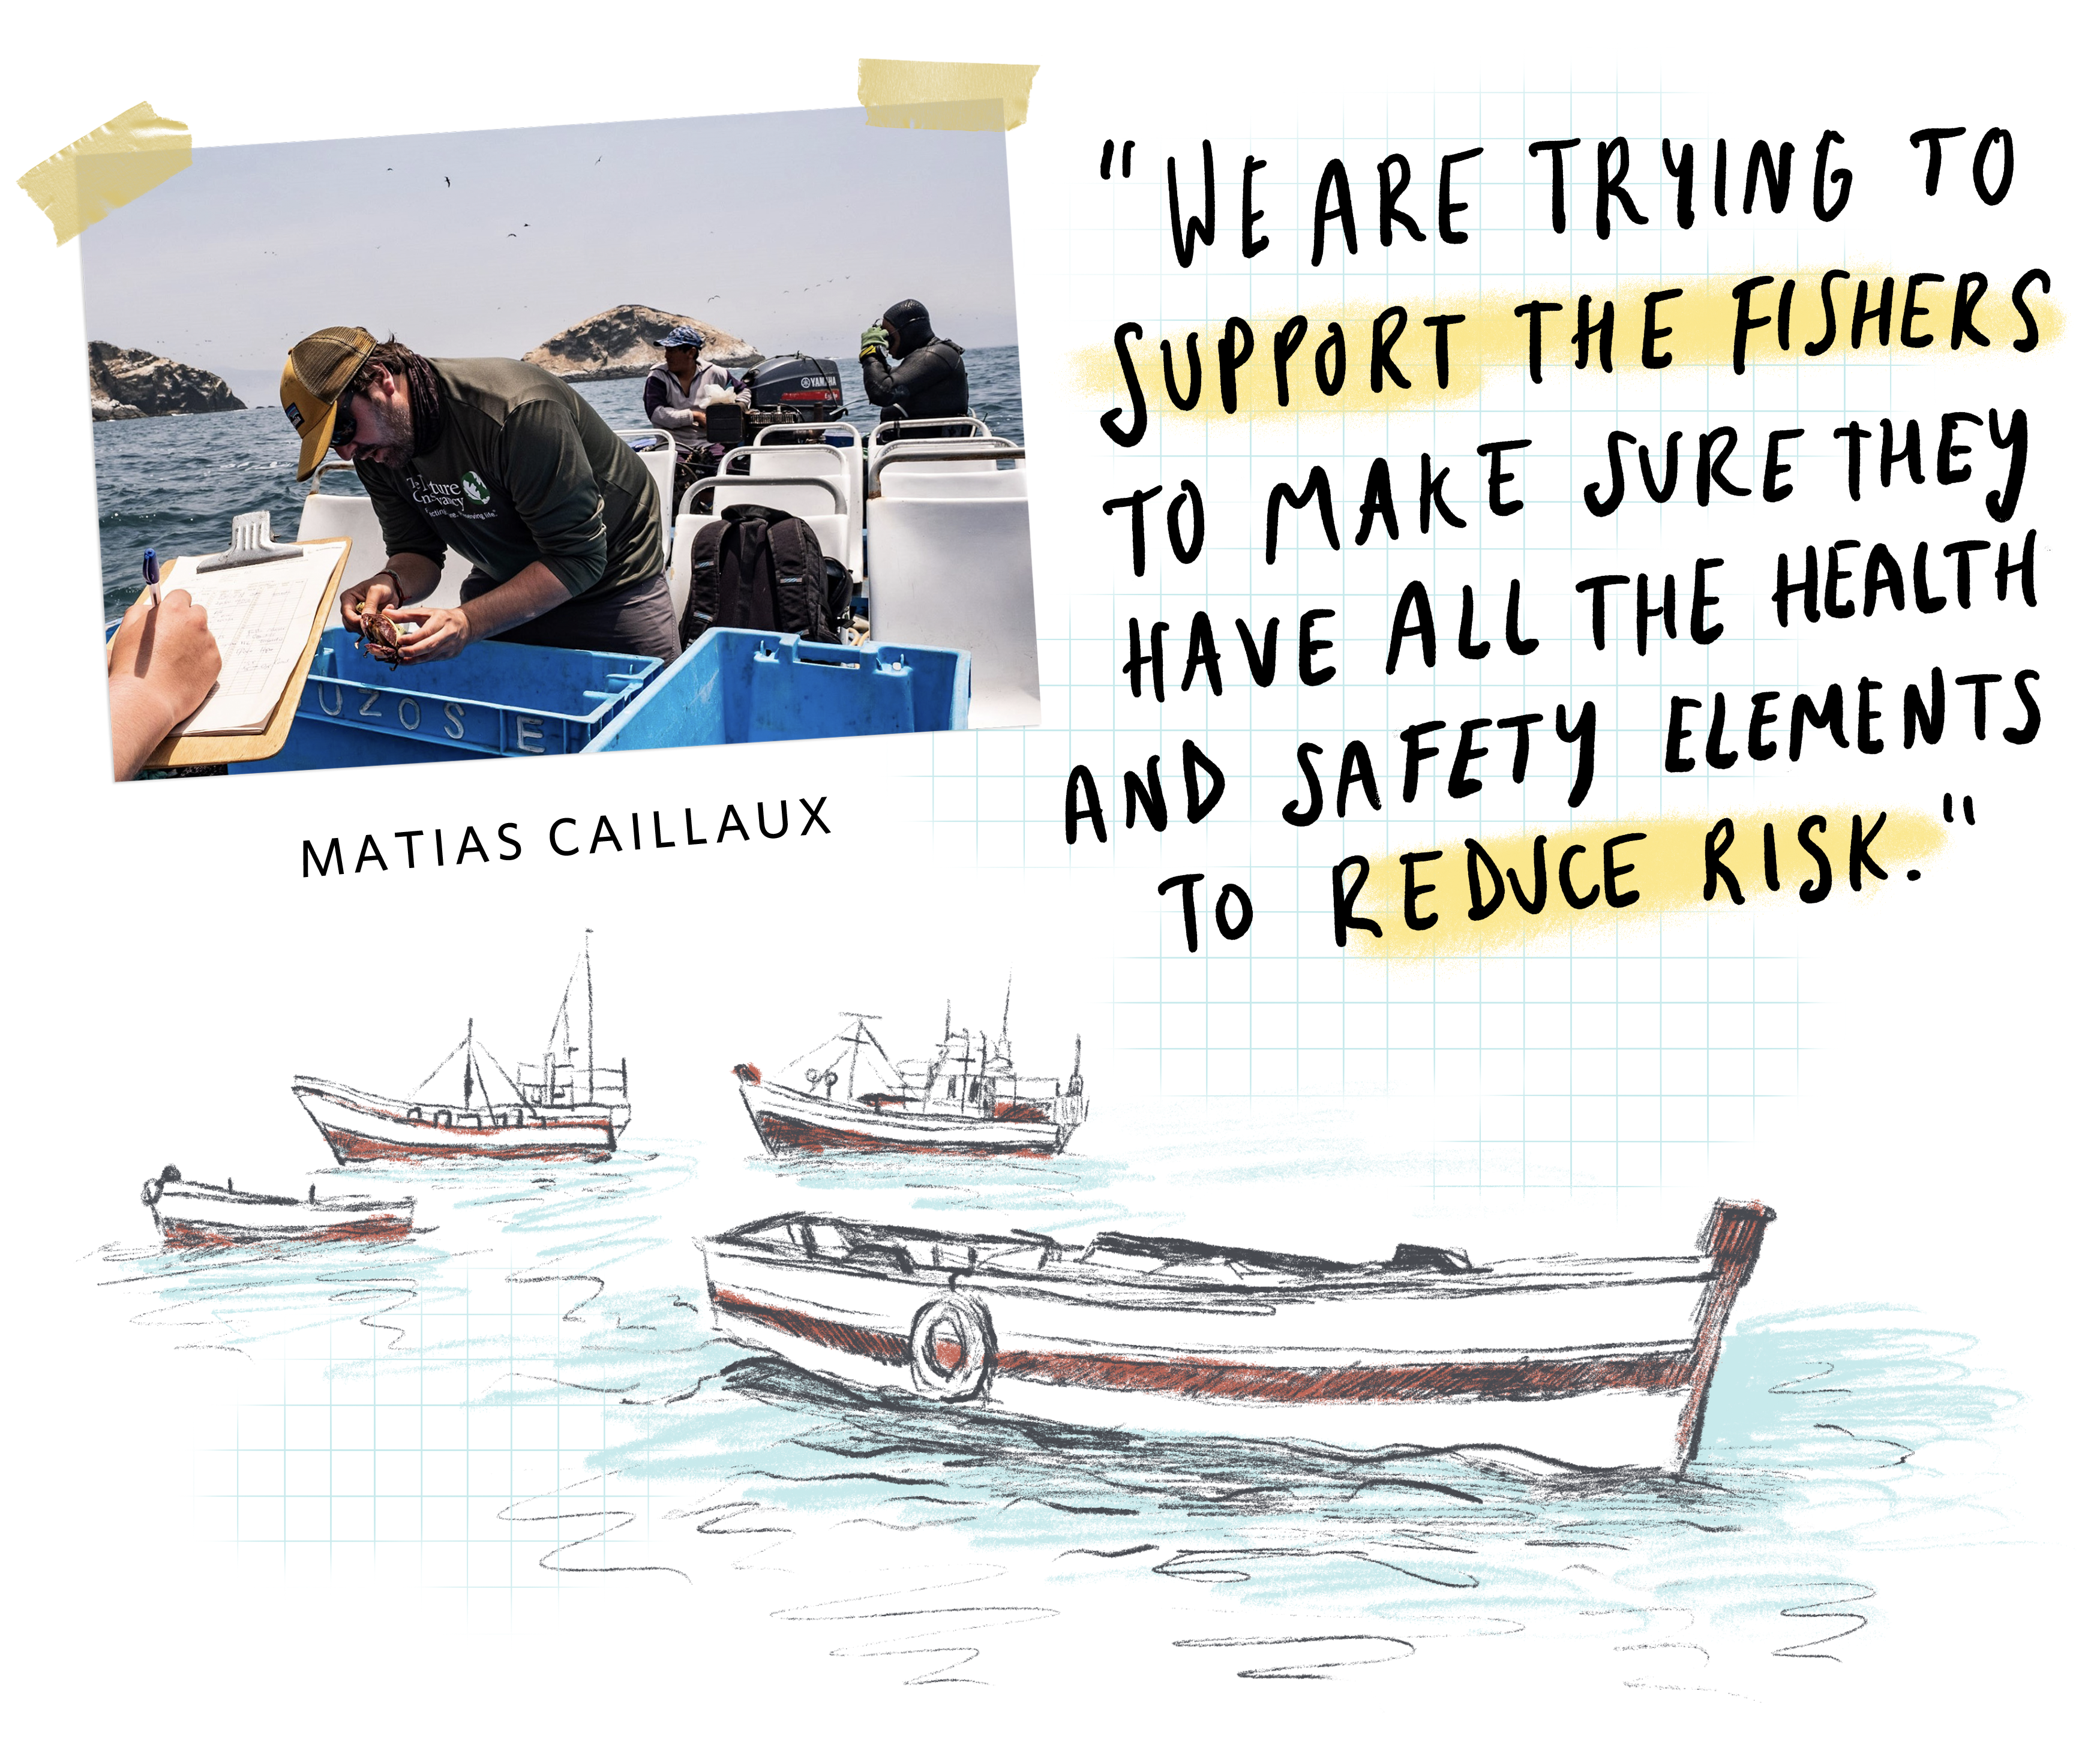 a collage including a photo of a man investigating shellfish on a boat, a handwritten quote that says 'we are trying to support the fishers to make sure they have all the health and safety elements to reduce risk' and below, a sketchy illustration of four fishing boats.